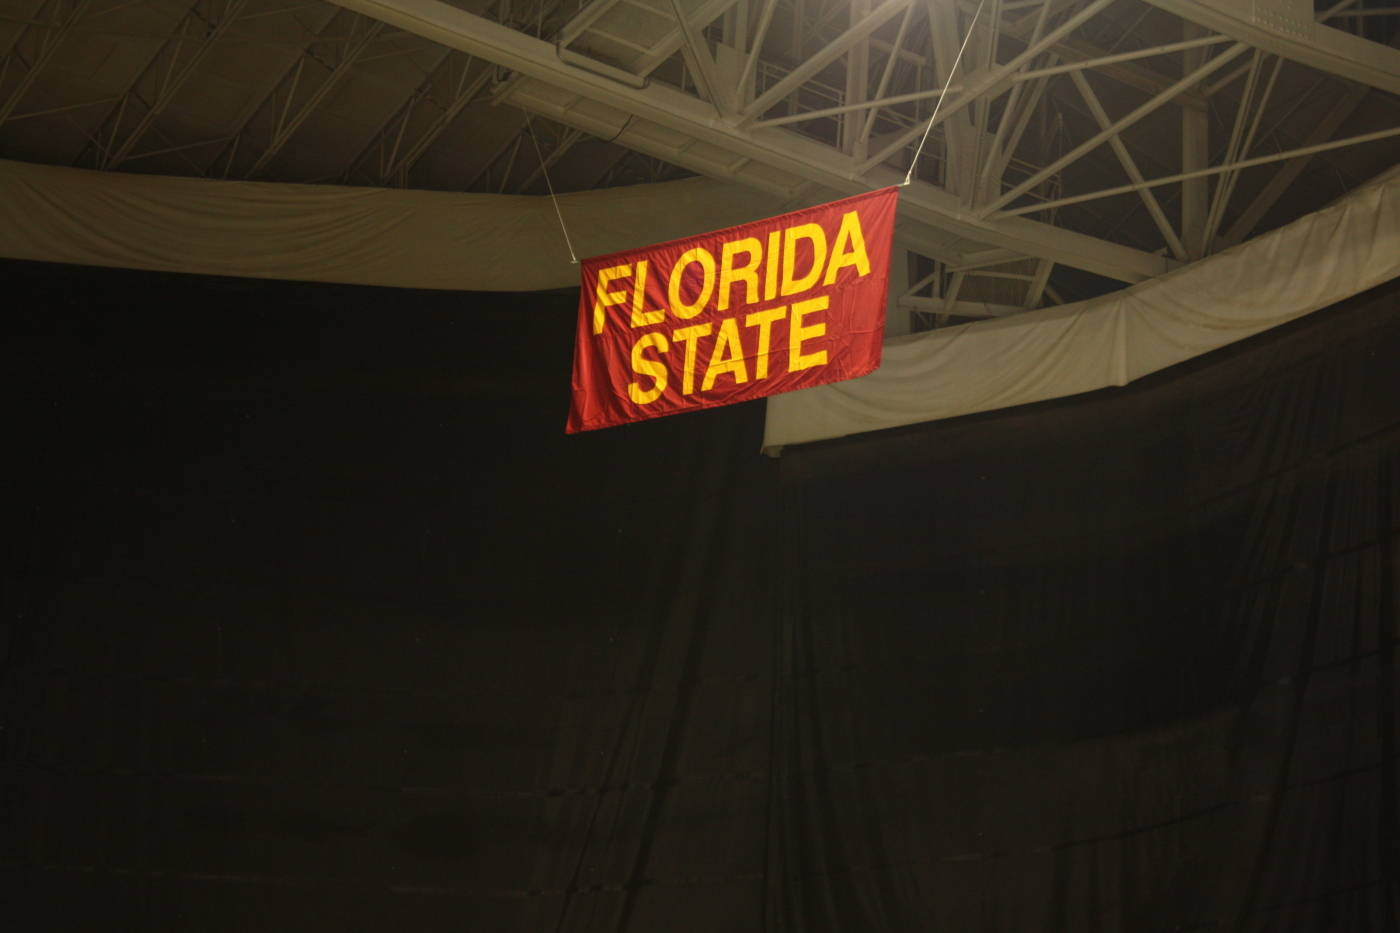 Florida State plays Friday at 6 p.m.